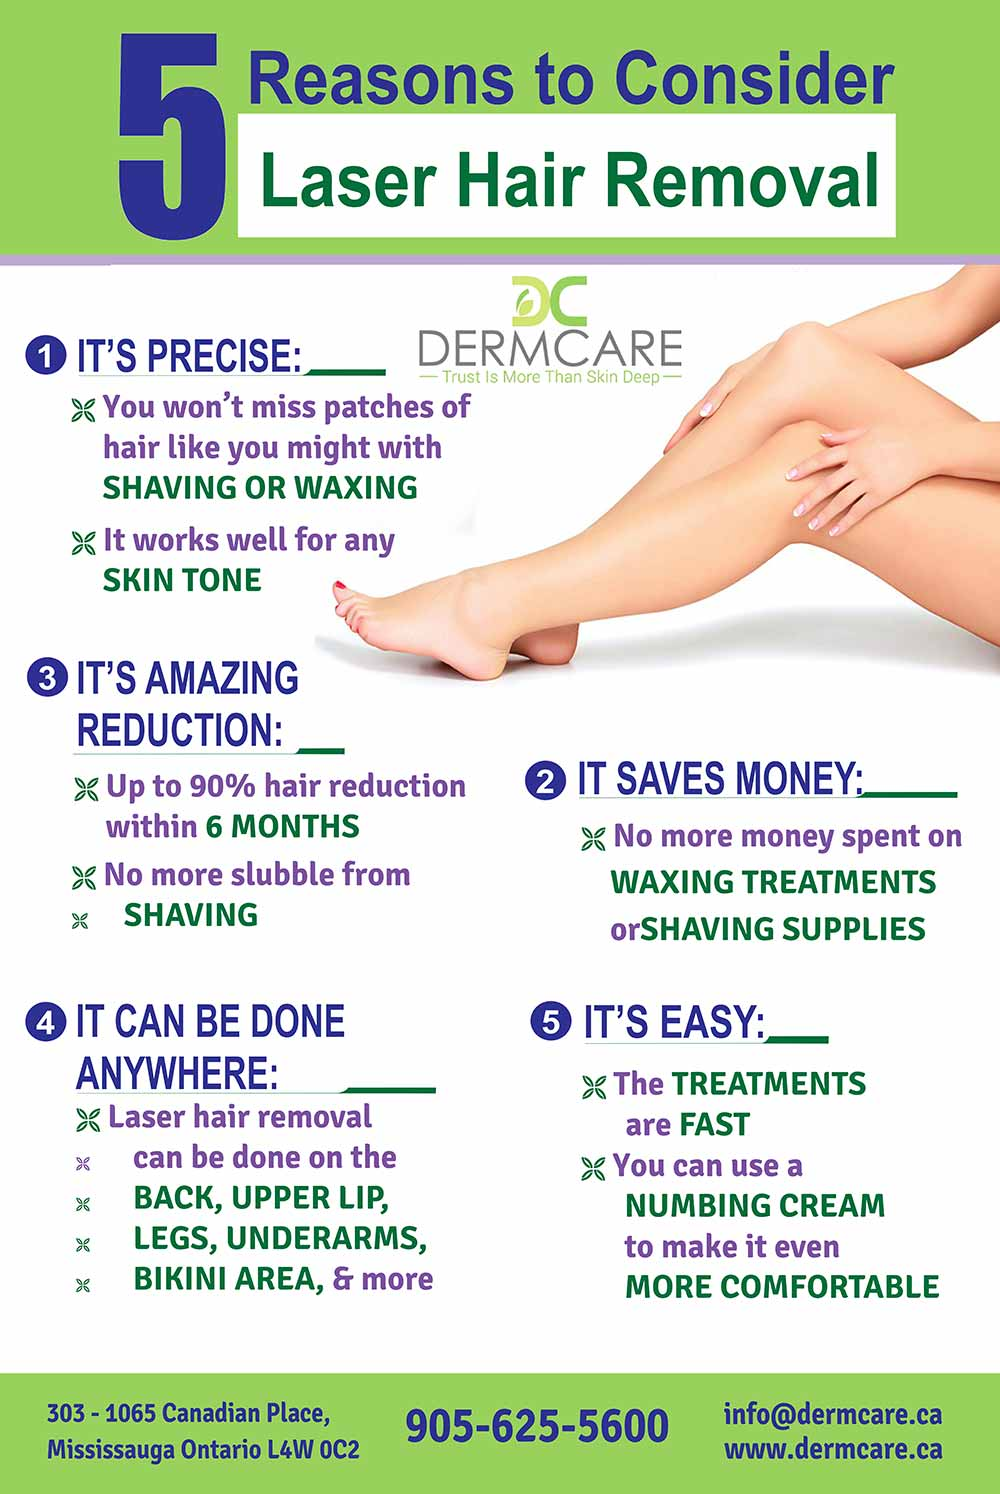 5 Reason to Consider Laser Hair Removal at DermCare